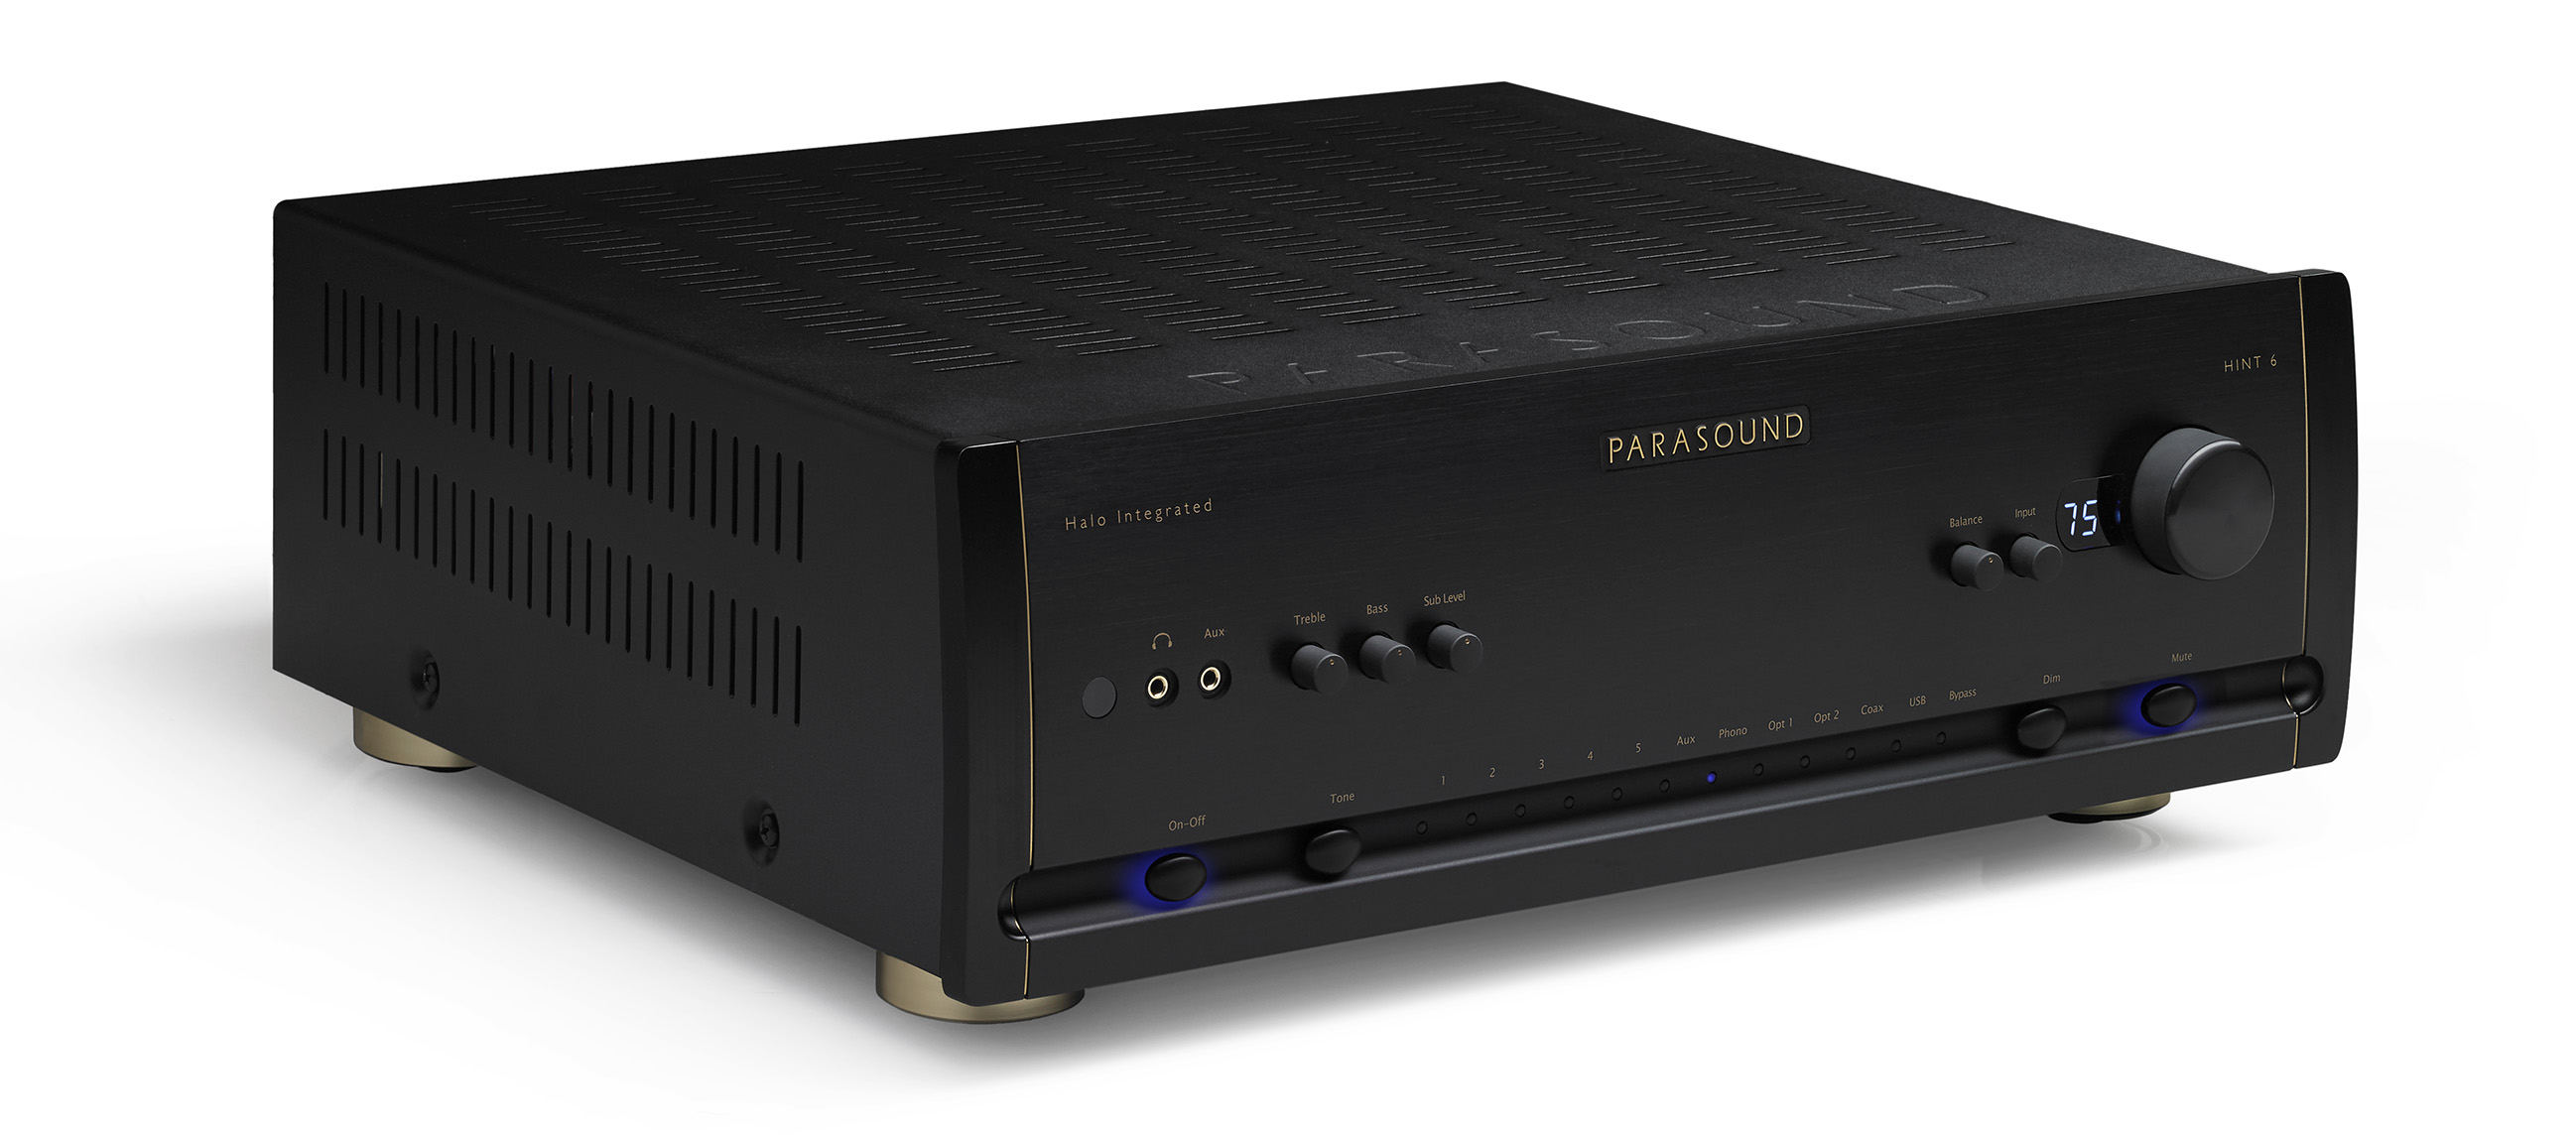 The New Apartment Lounge: Solid-State Joy with Parasound's New HINT 6 Halo Integrated Amplifier